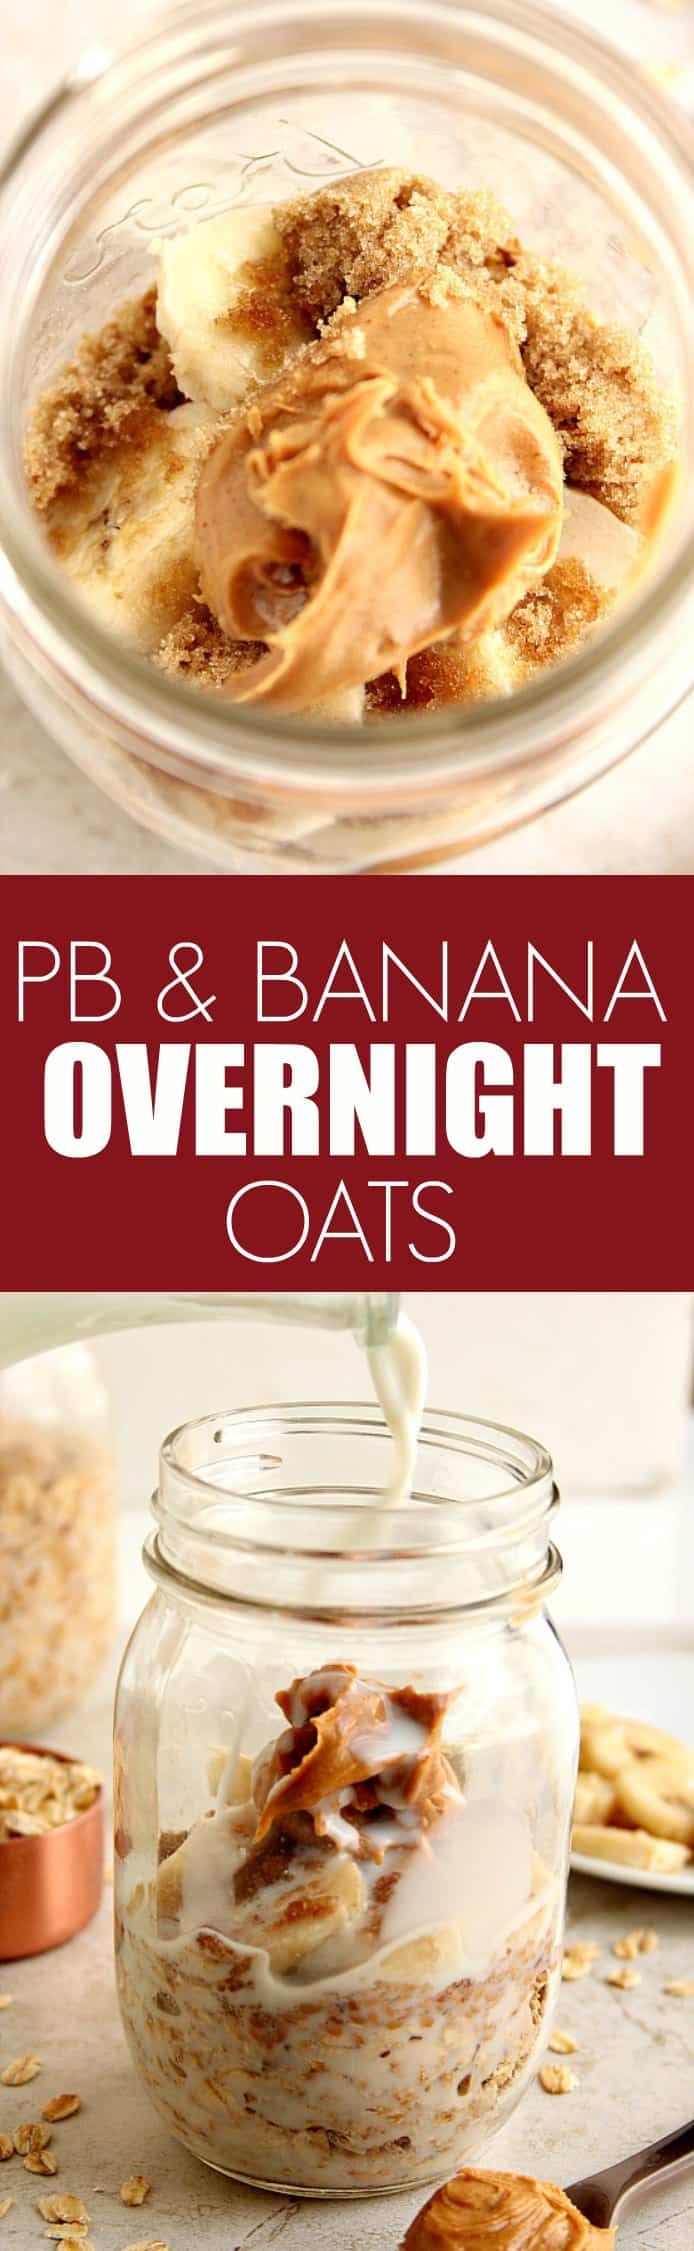 peanut butter banana overnight oats long Peanut Butter Banana Overnight Oats Recipe